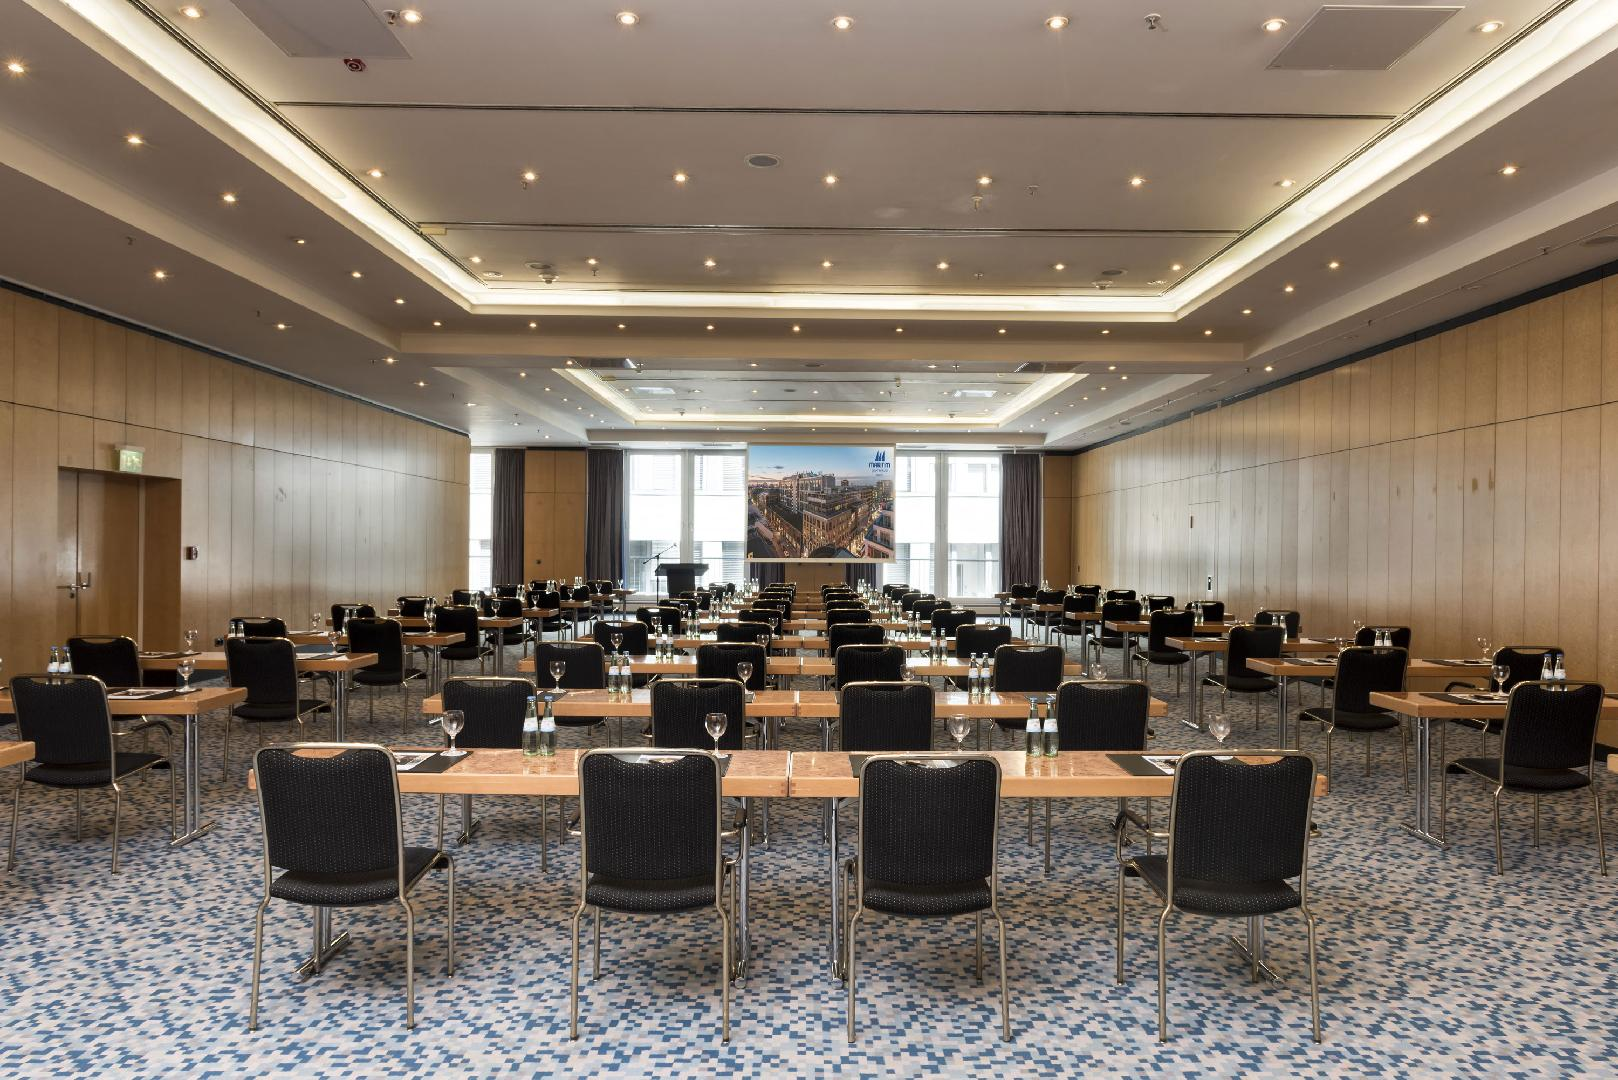 Picture 2 of Saal Maritim (Sektion A)